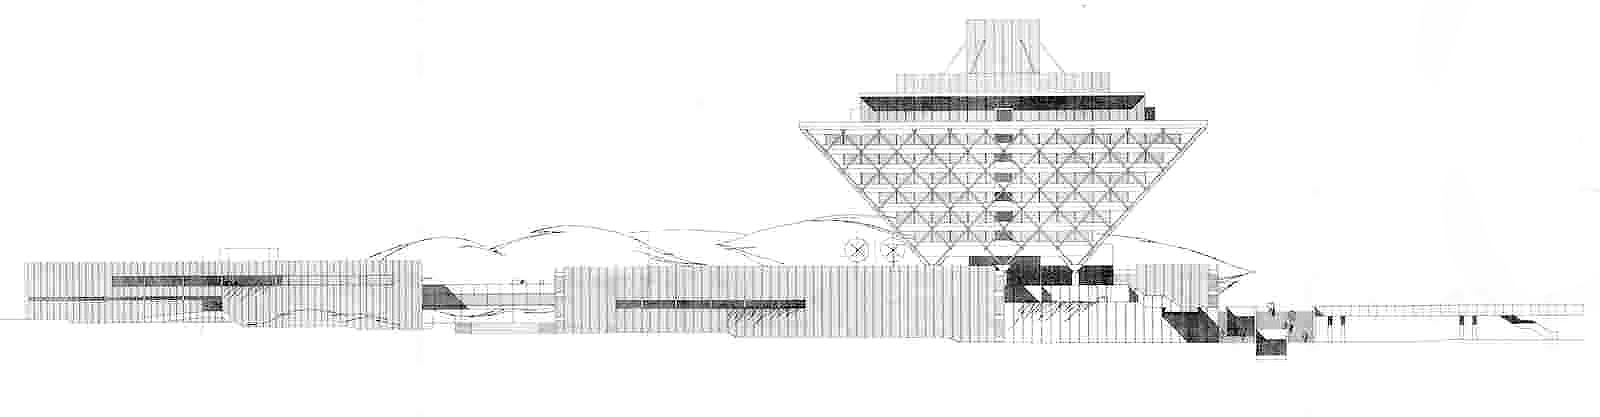 Elevation showing the walkways that connect out into the city by architects Štefan Svetko, Štefan ?urkovi? and Barnabáš Kissling.